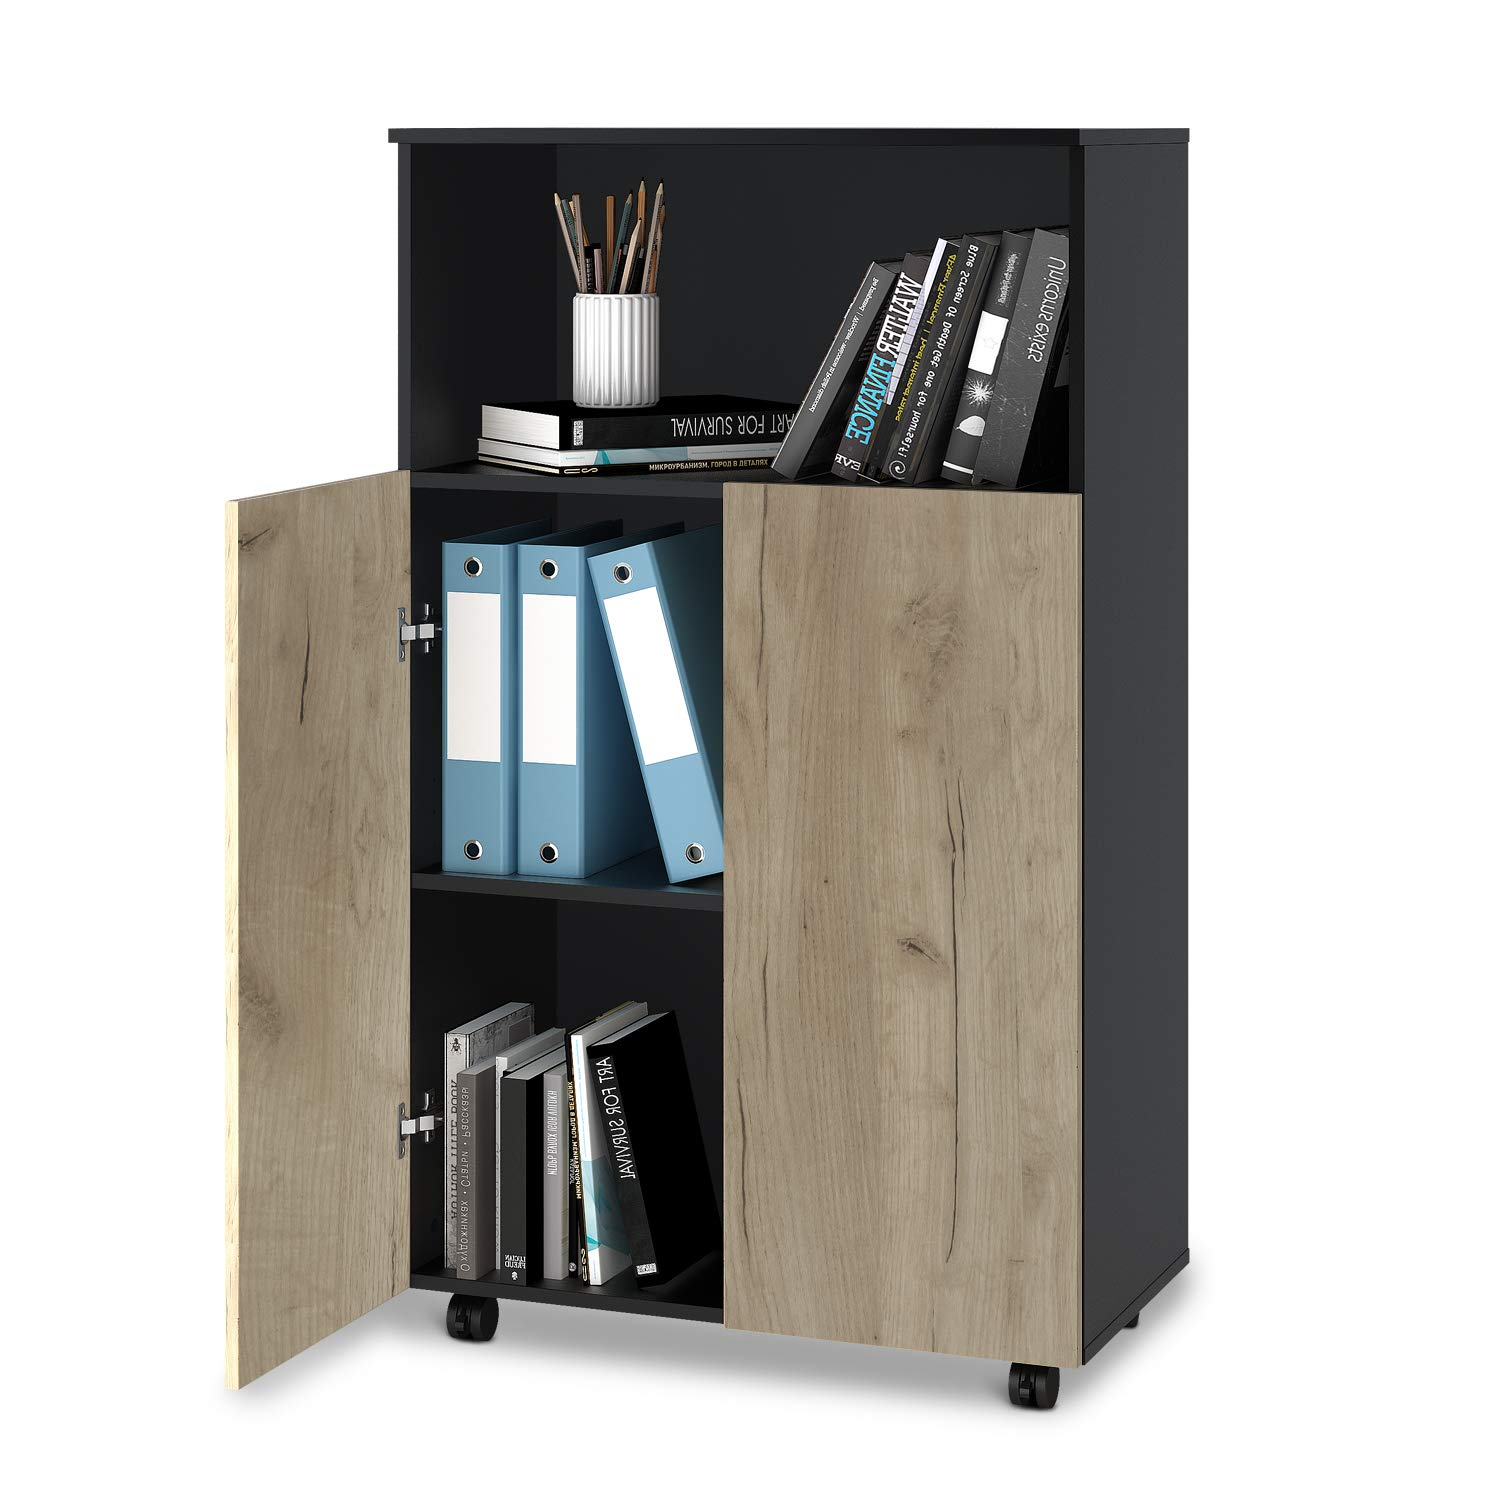 DEVAISE Storage Cabinet with 2 Doors, Mobile File Cabinet with Adjustable Shelf for Home Office